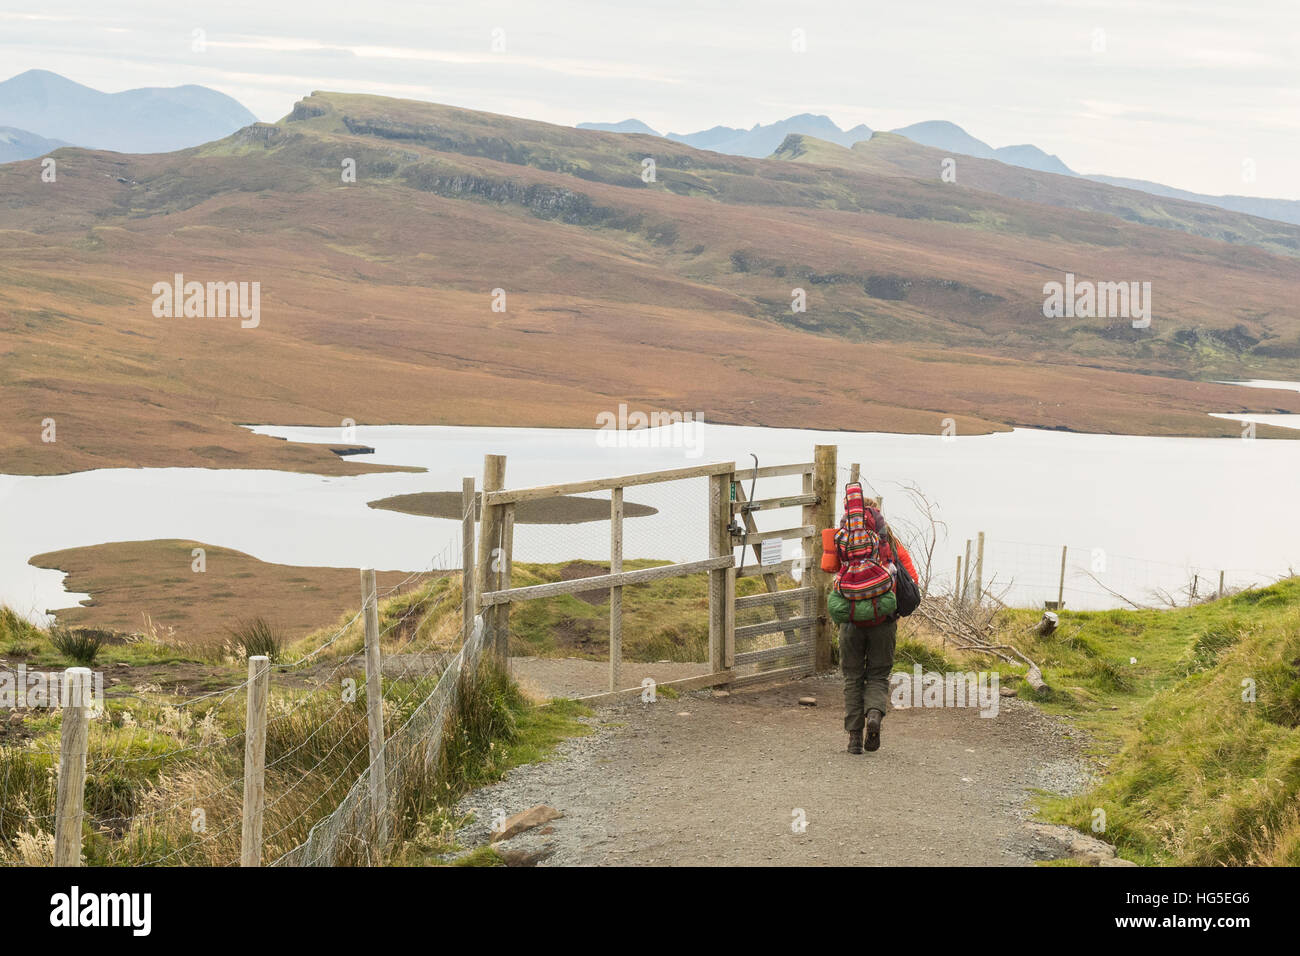 solitary female hiker traveller carrying guitar on back descending from the Old Man of Storr, Isle of Skye, Scotland - Stock Image